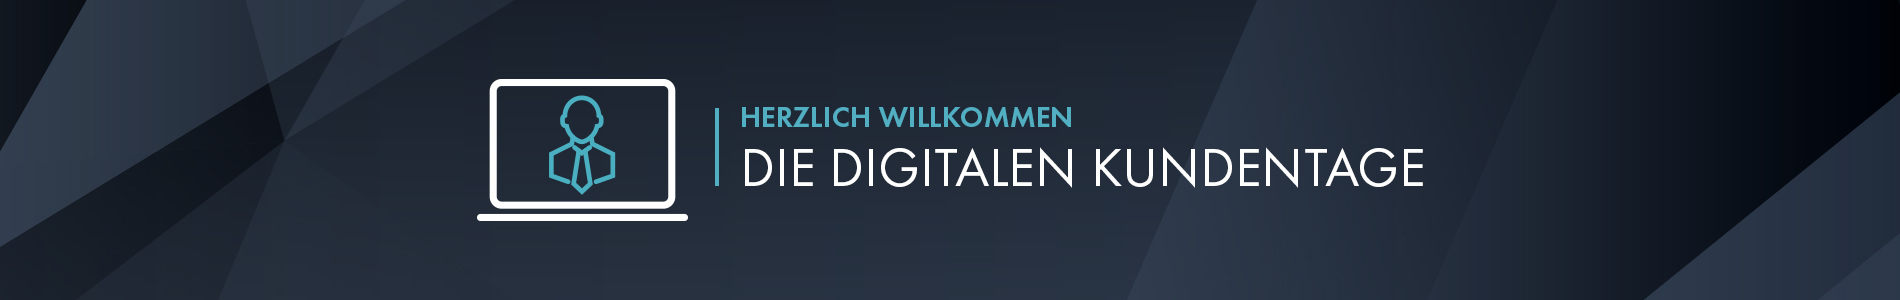 Icon und Text zu den digitalen Kundentagen